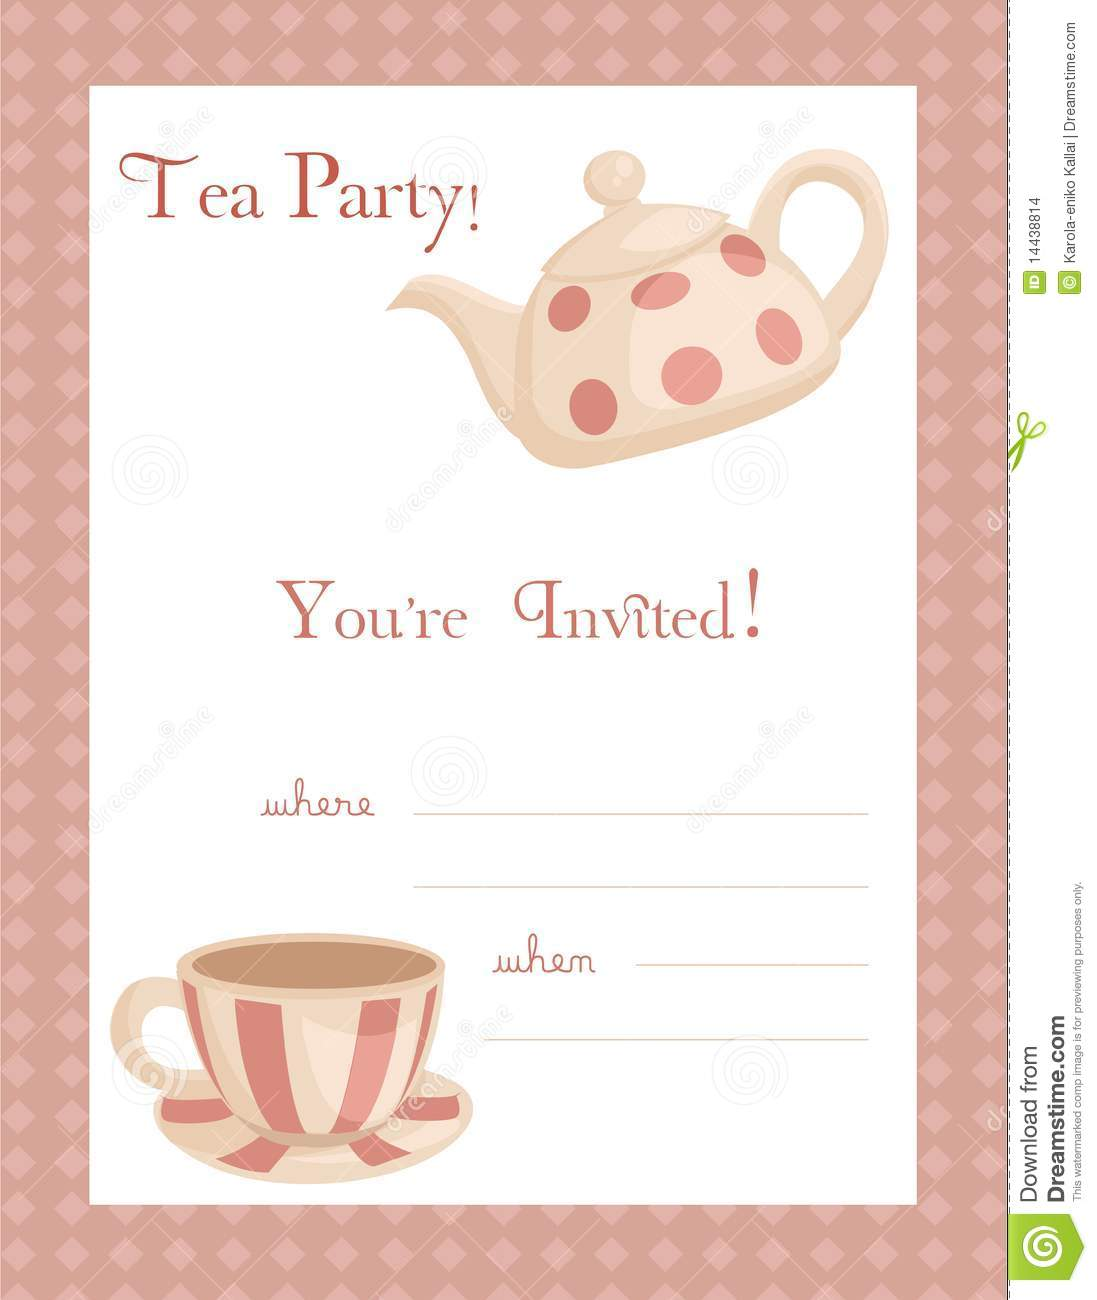 Tea party invitation stock vector illustration of for Tea party menu template